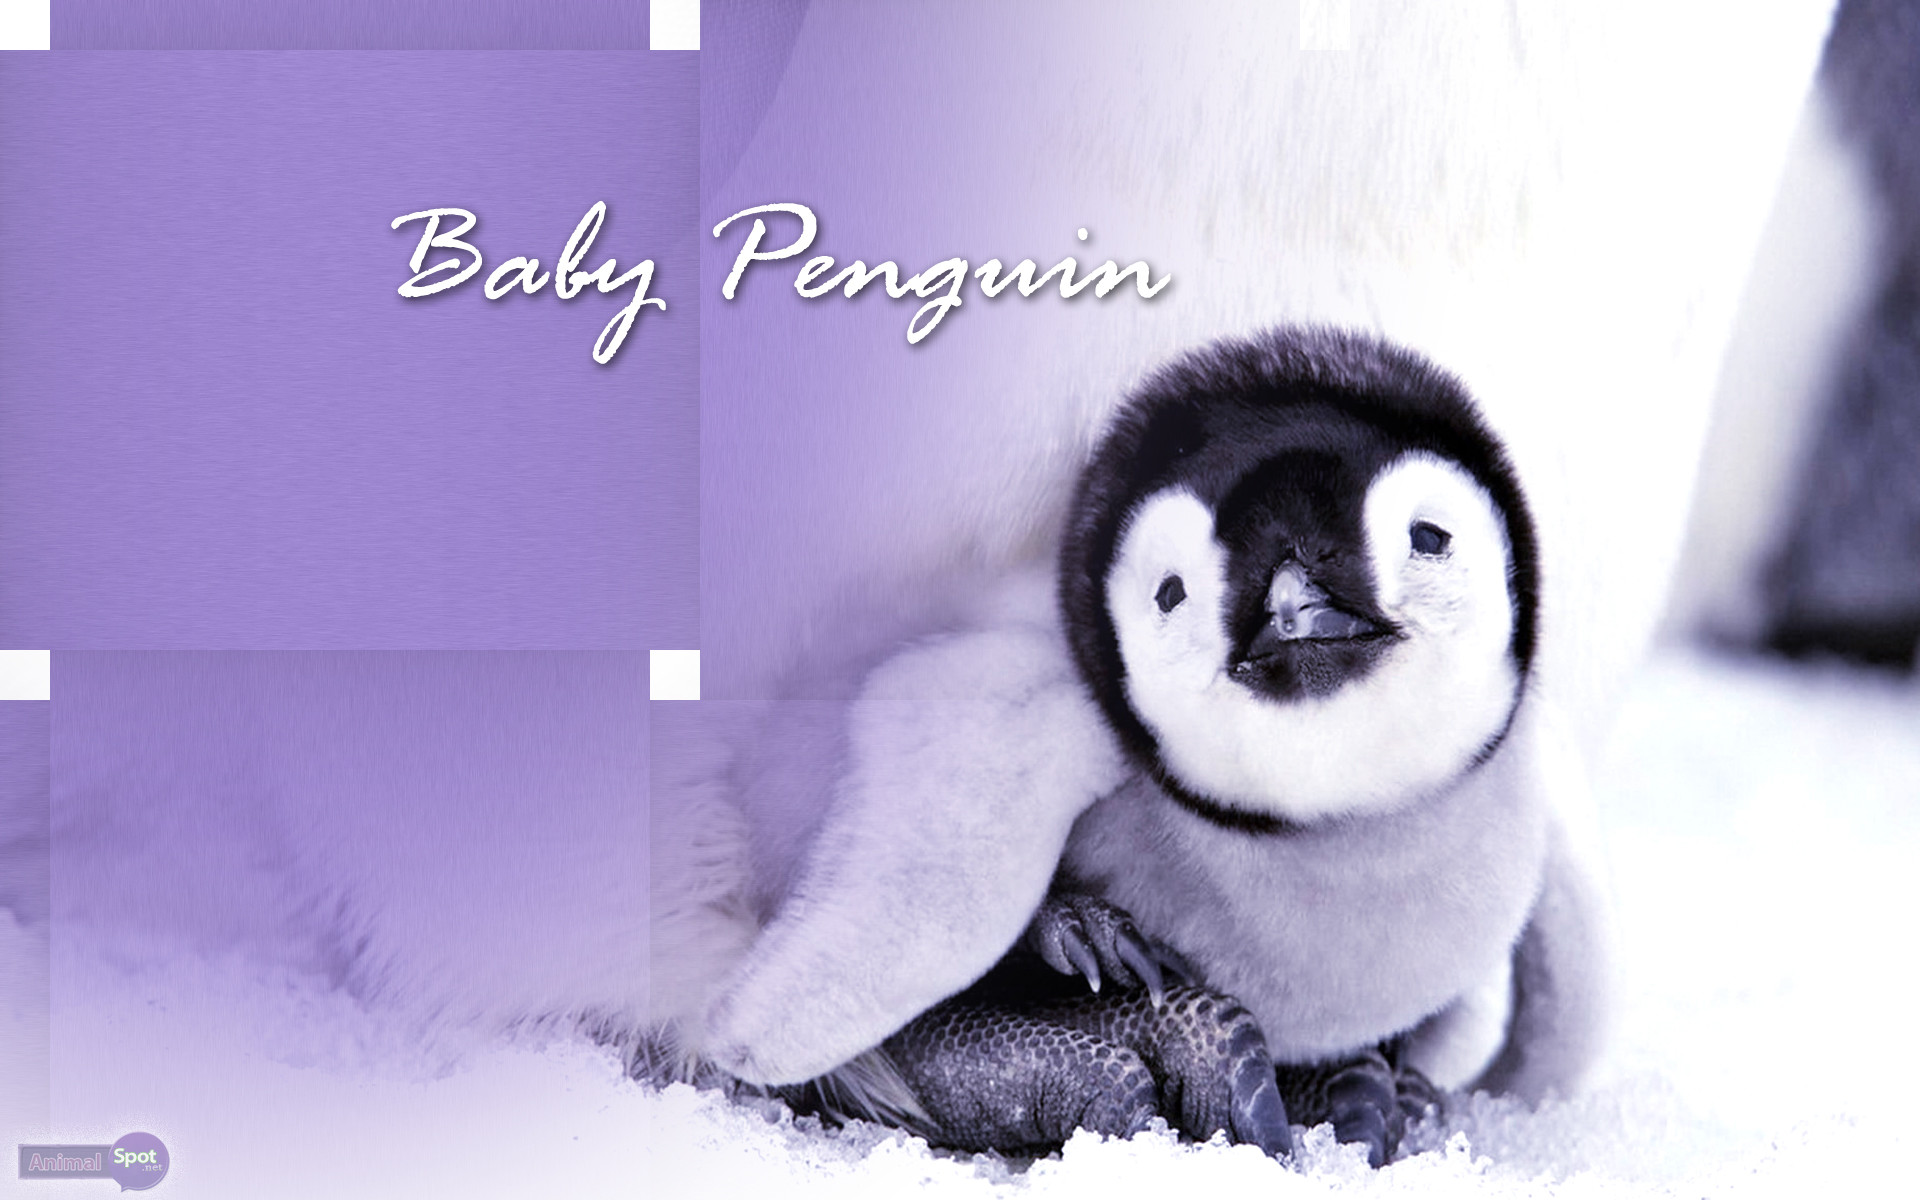 Best Penguin Wallpapers and Backgrounds